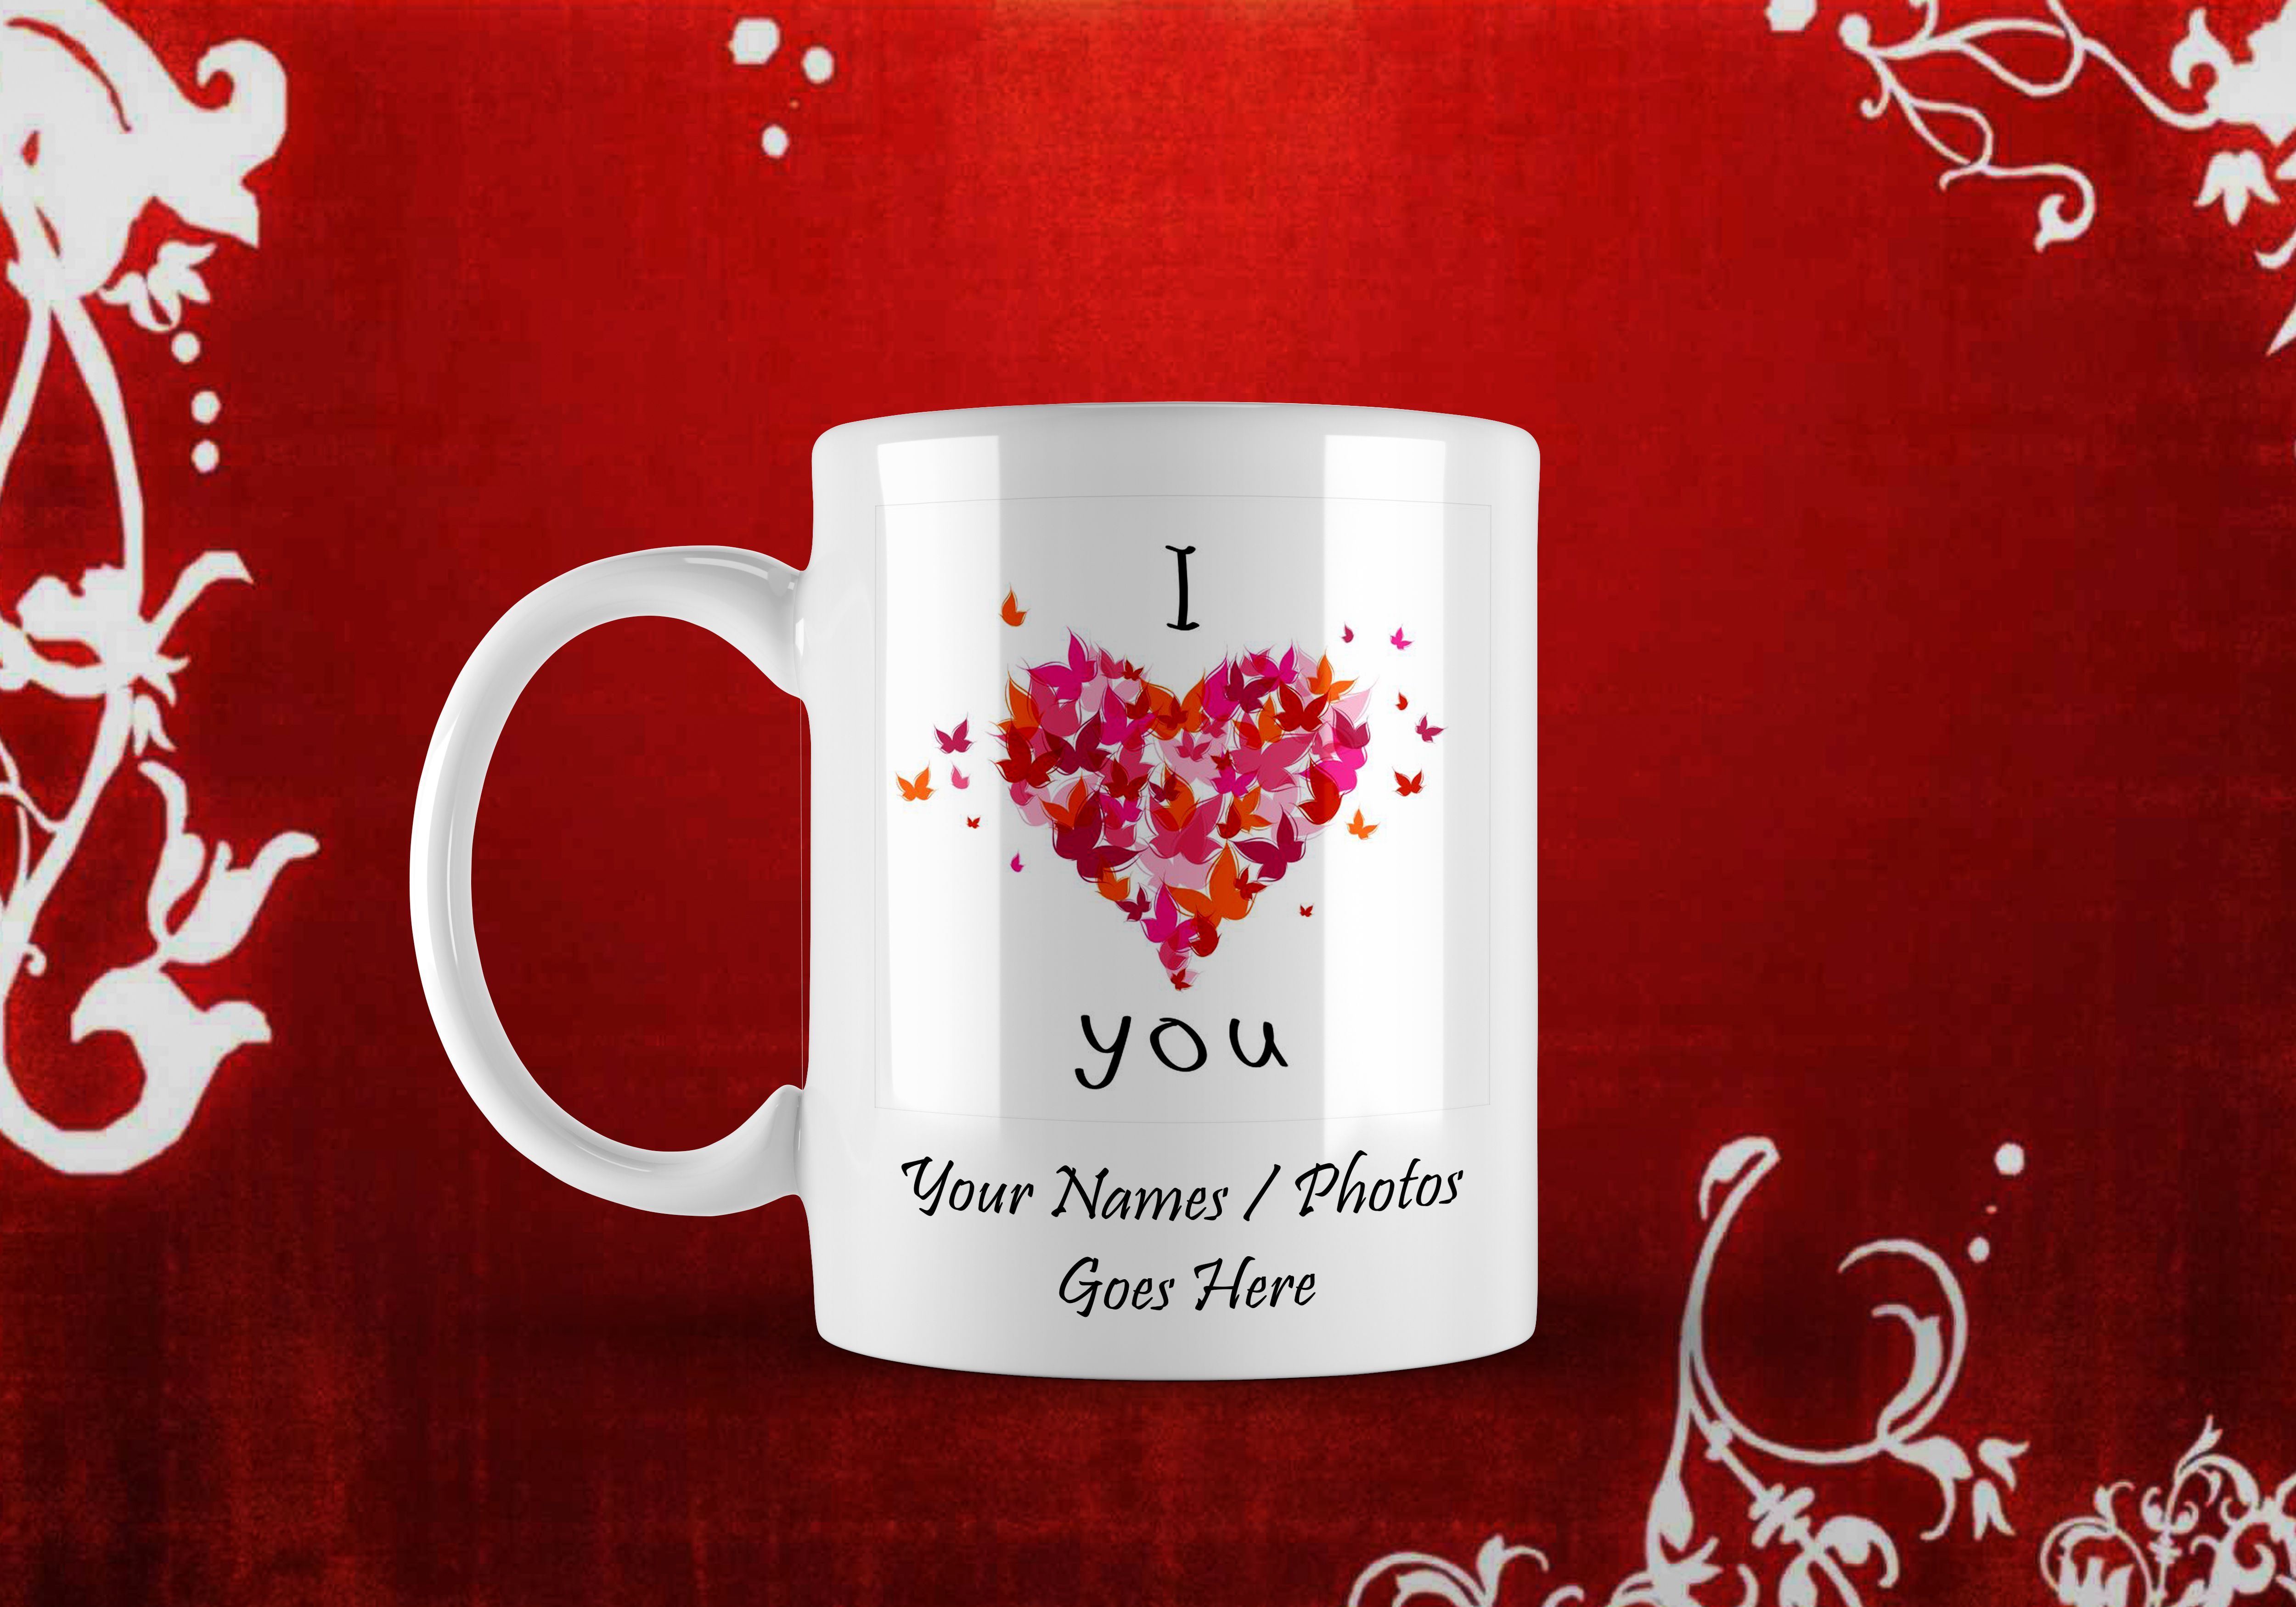 Personalized Printed White Mugs With Your Photos And Text Rs 500